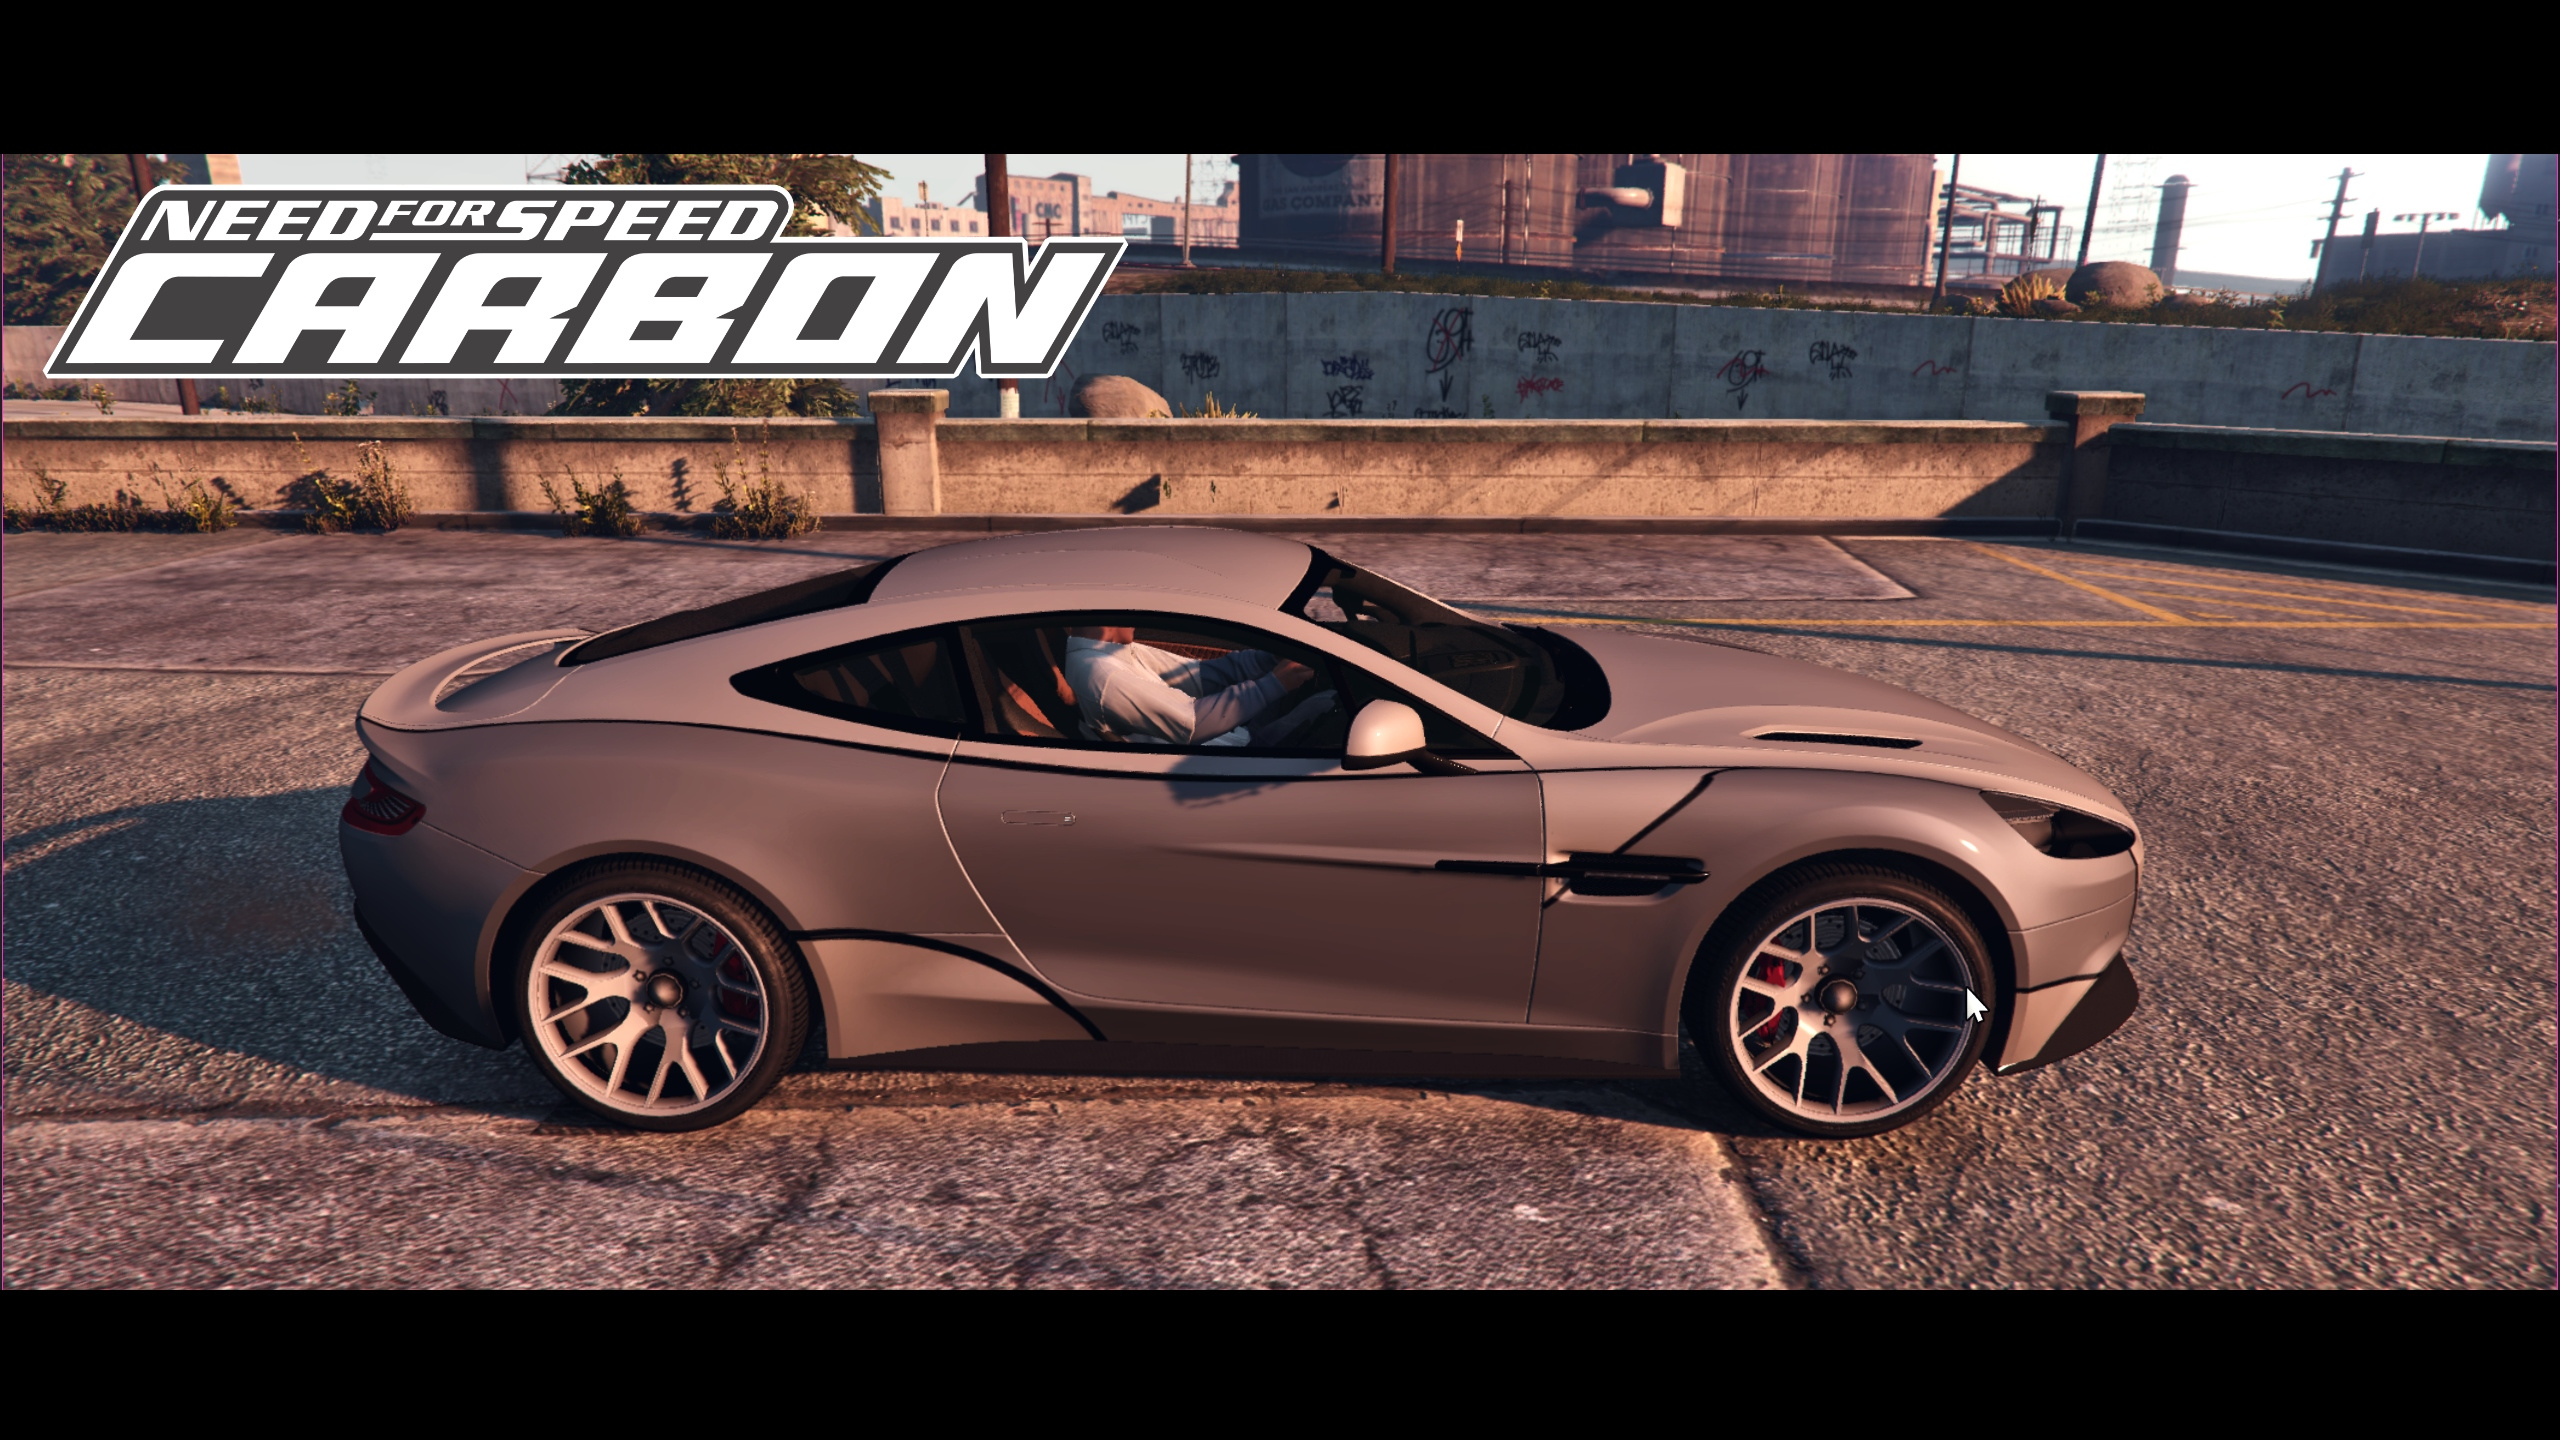 2013 Aston Martin Vanquish Wolf Need For Speed Carbon Paintjob Gta5 Mods Com